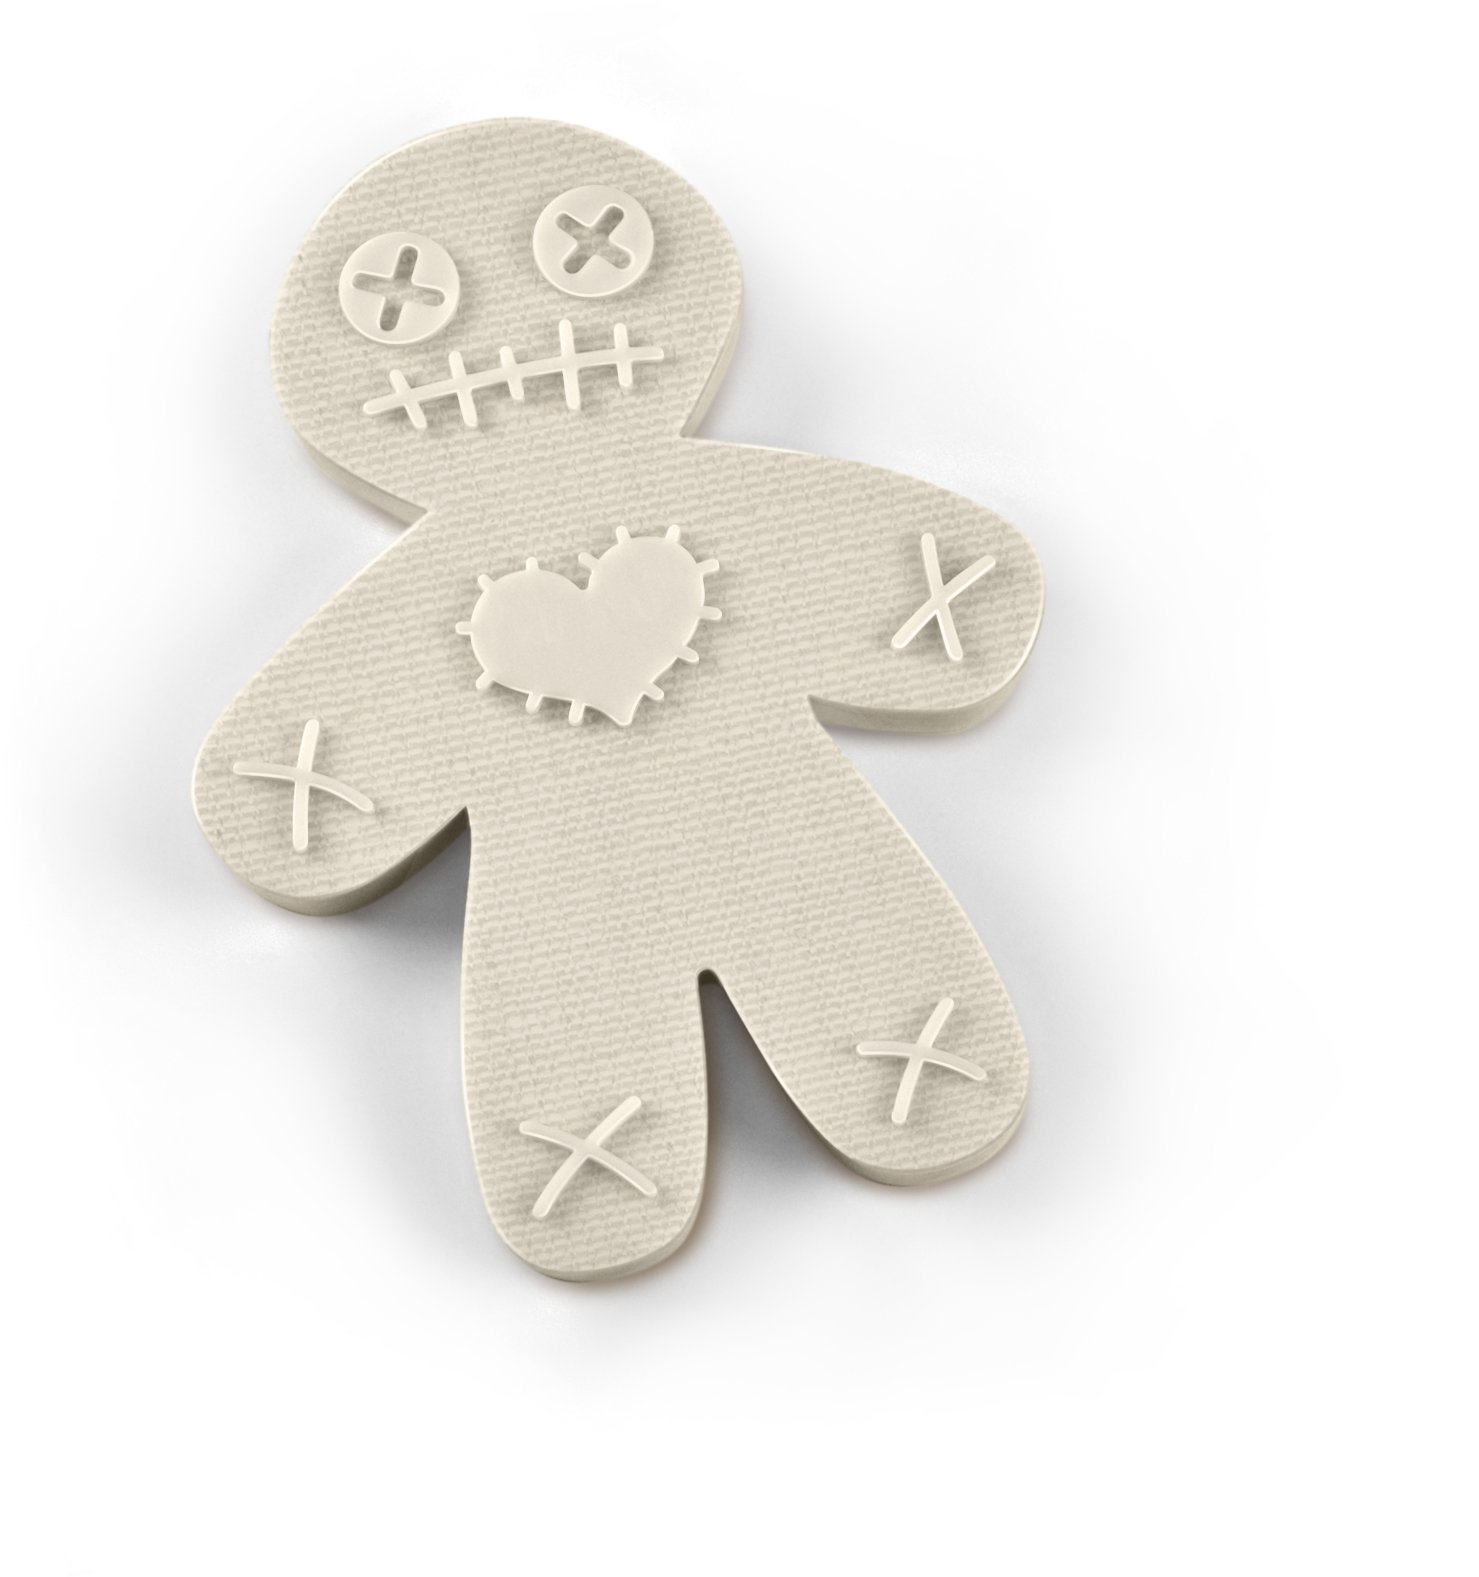 Fred CURSED COOKIES Voodoo Doll Cookie Cutter/Stamper